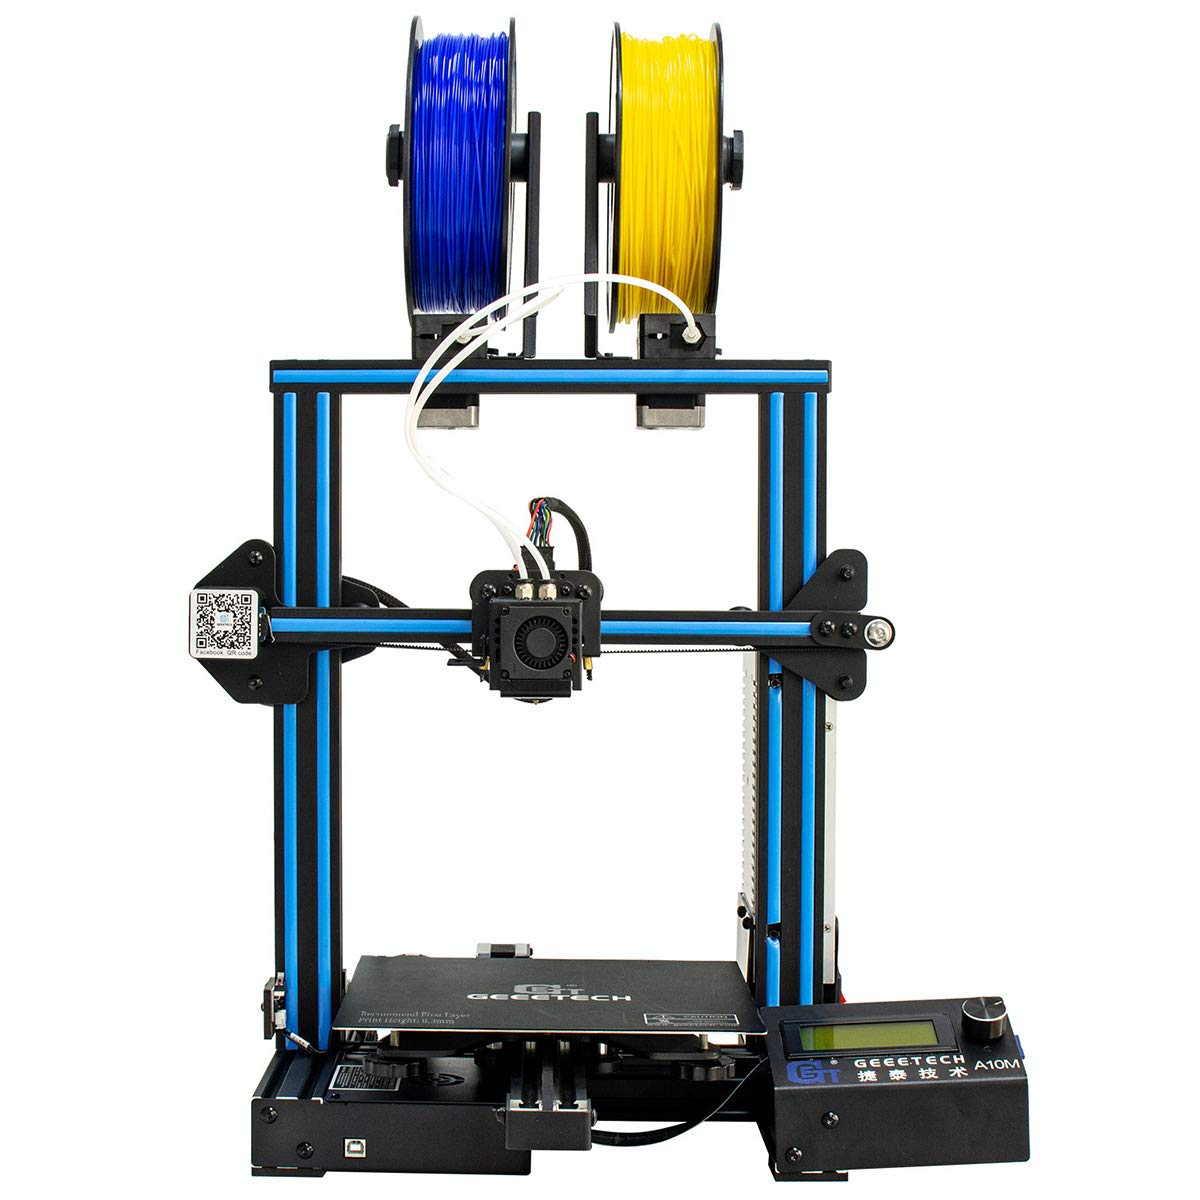 GEEETECH New A10M 3D Printer with Mix-Color Printing ...